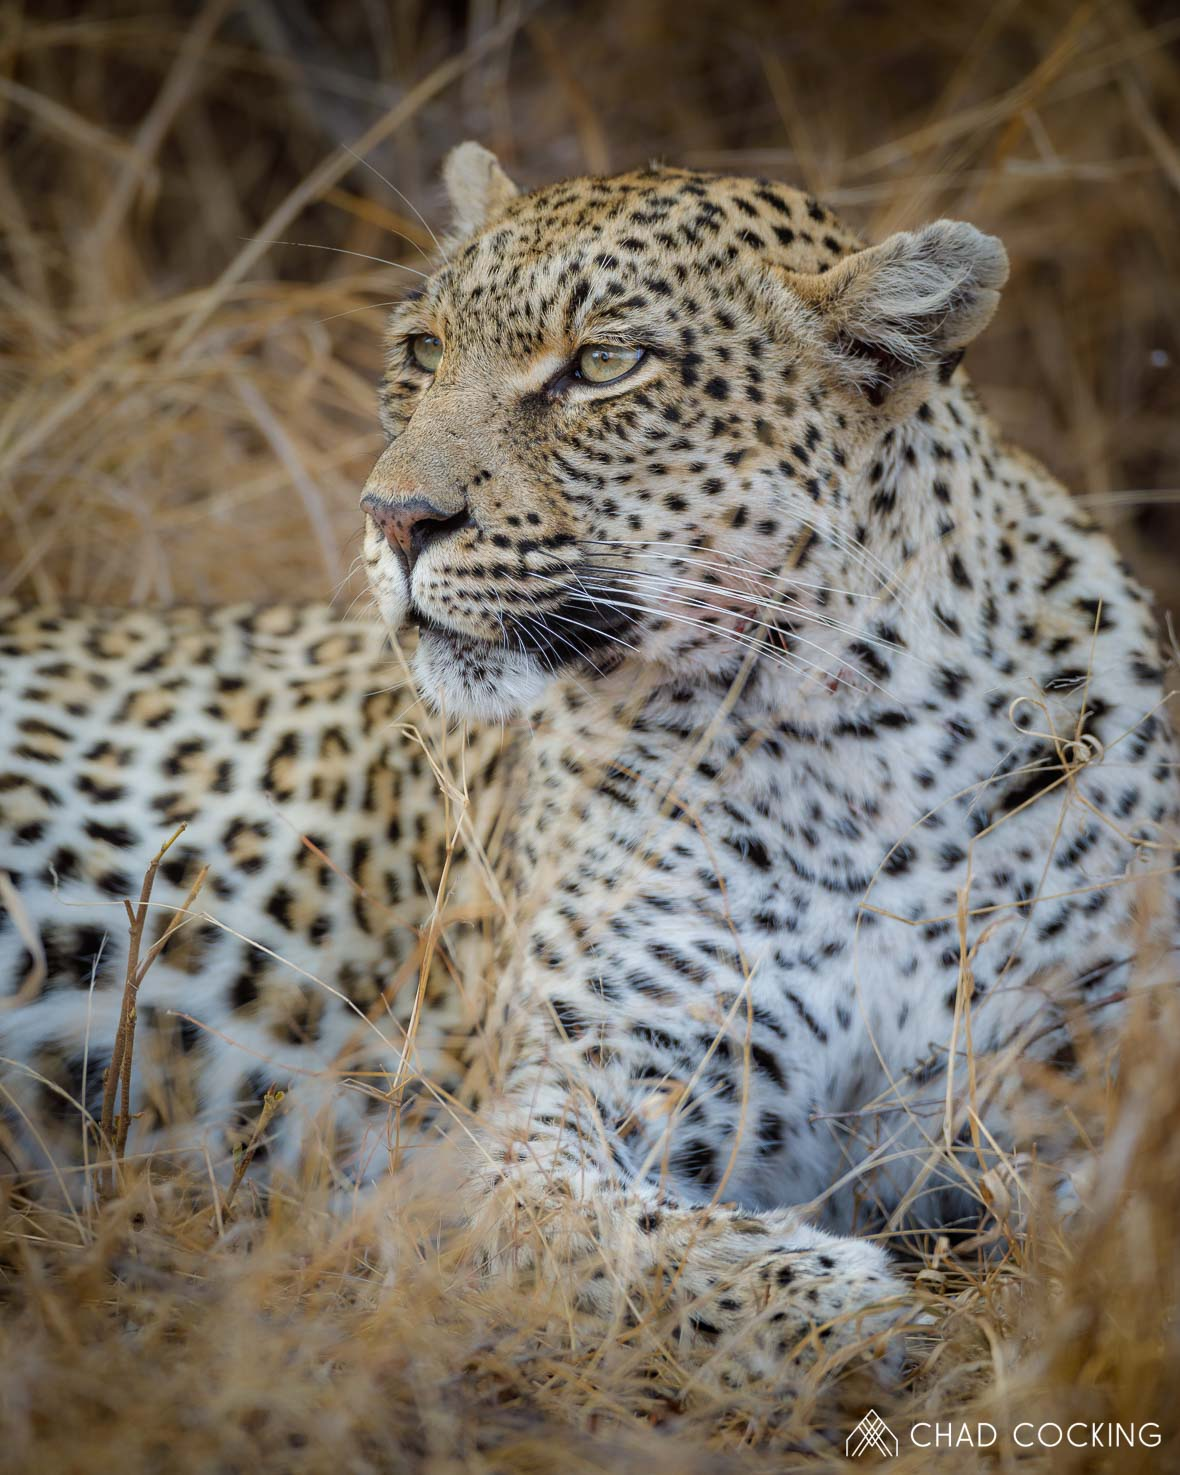 Leopard at Tanda Tula in the Timbavati Game Reserve, part of the Greater Kruger National Park, South Africa - Photo credit: Chad Cocking